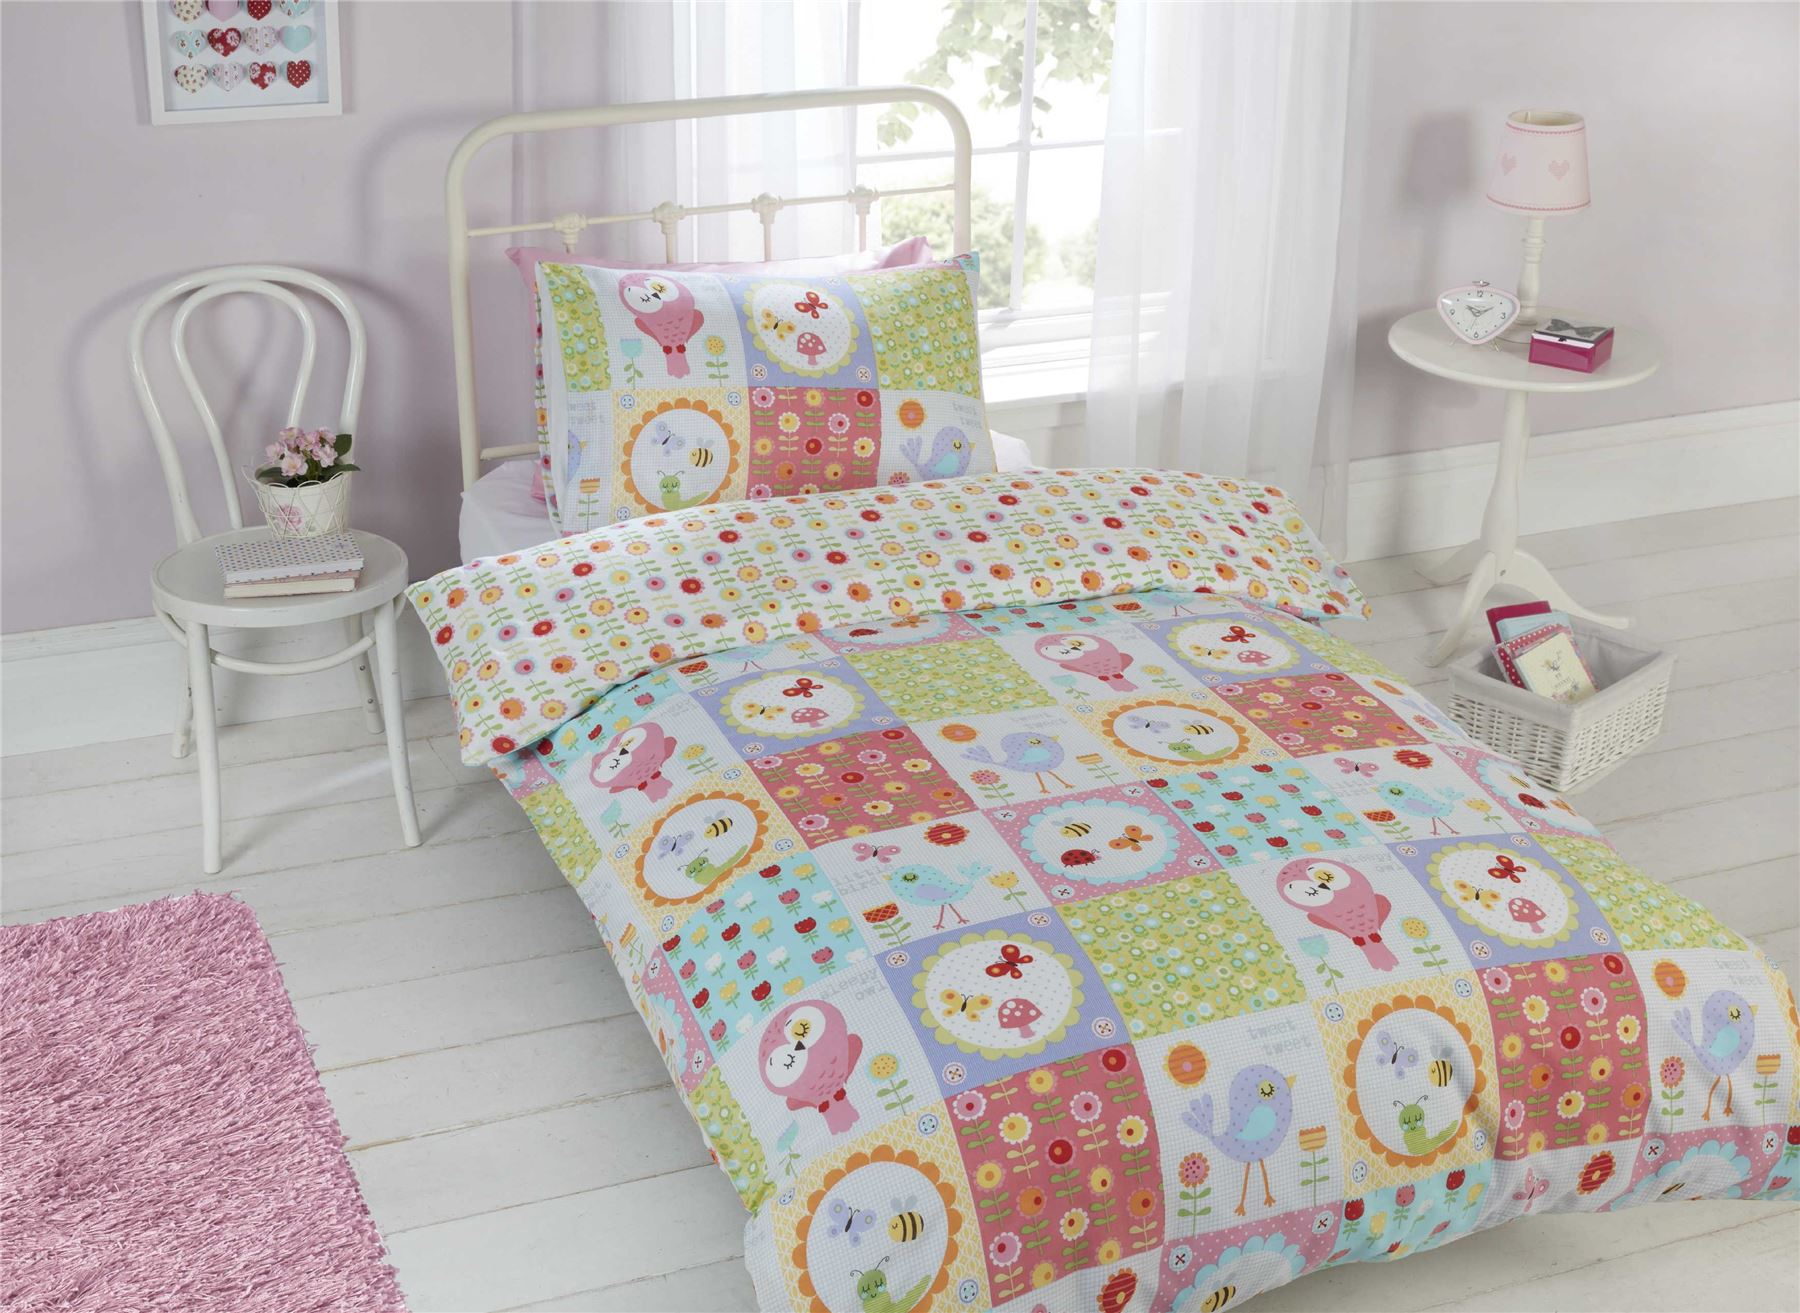 from bed linen patchwork bedlinen kids childrens cover duvet stripes stars oklahoma and htm lace quilt